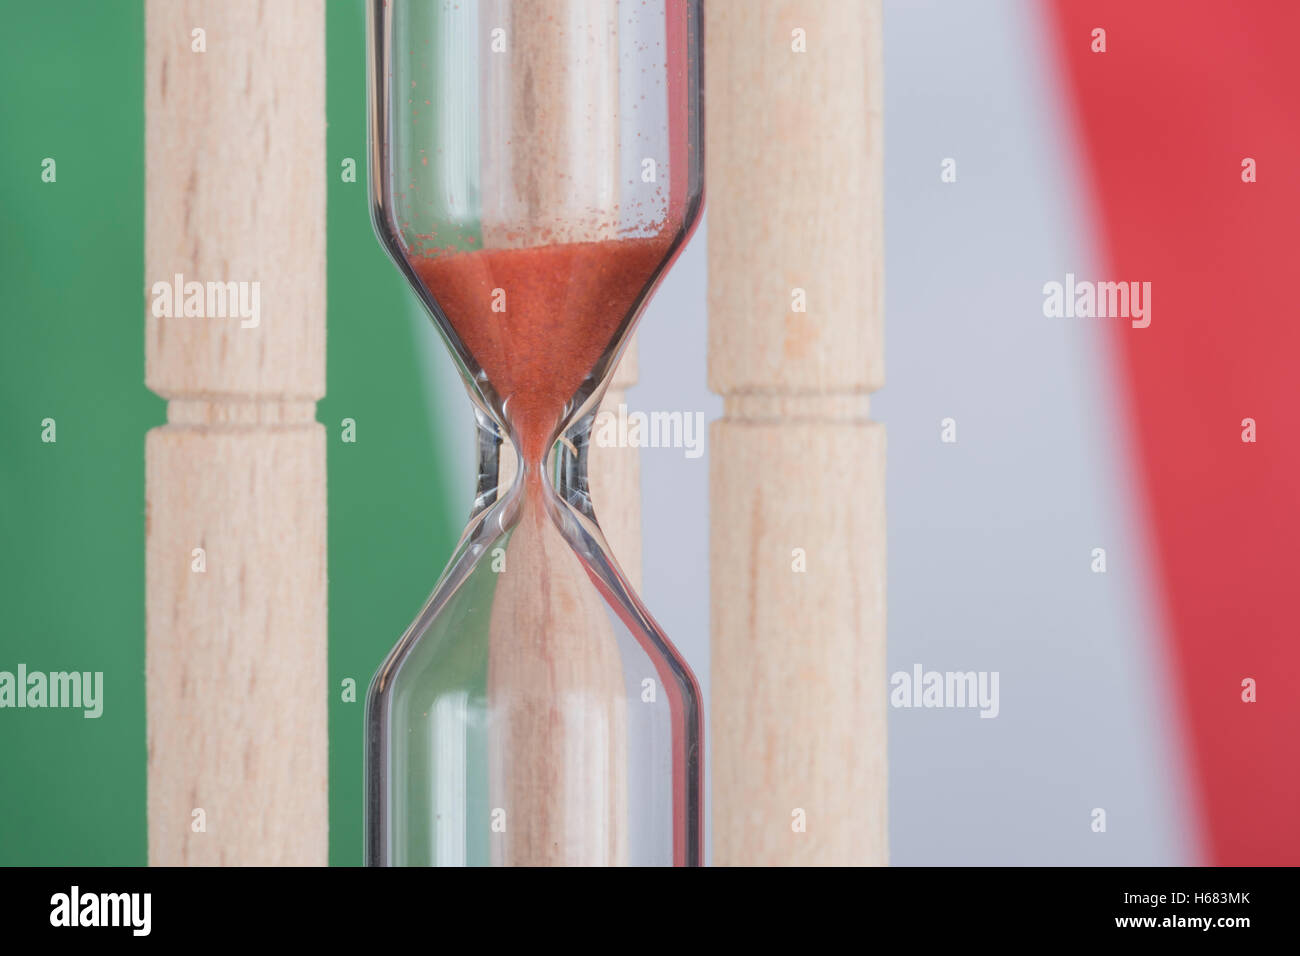 Italian flag with egg timer - metaphor for concept of time running out for Italy / Italian banking, financial bailout, - Stock Image